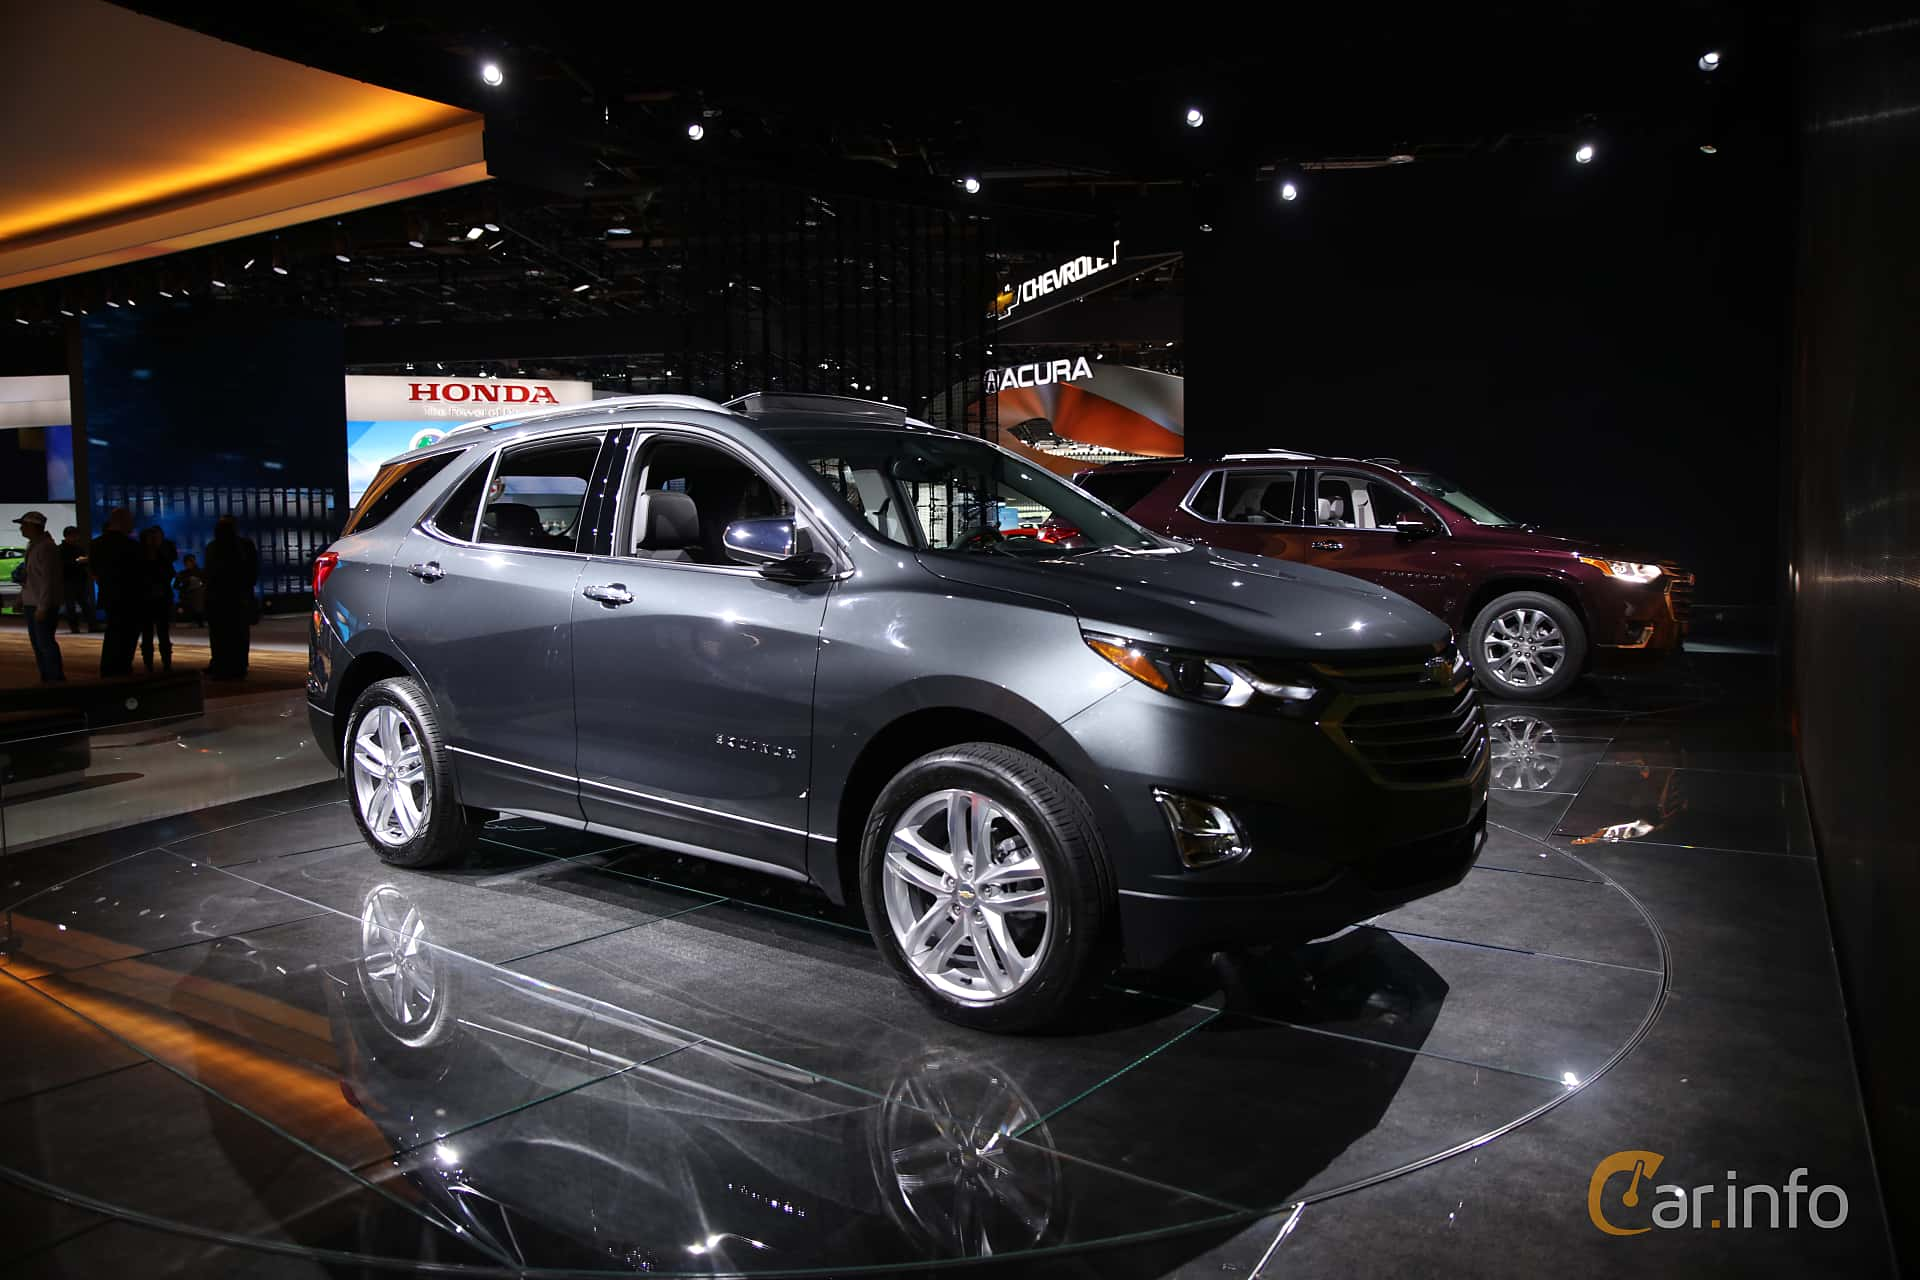 Chevrolet Equinox 2.4 AWD Automatisk, 185hk, 2017 at North American International Auto Show 2017